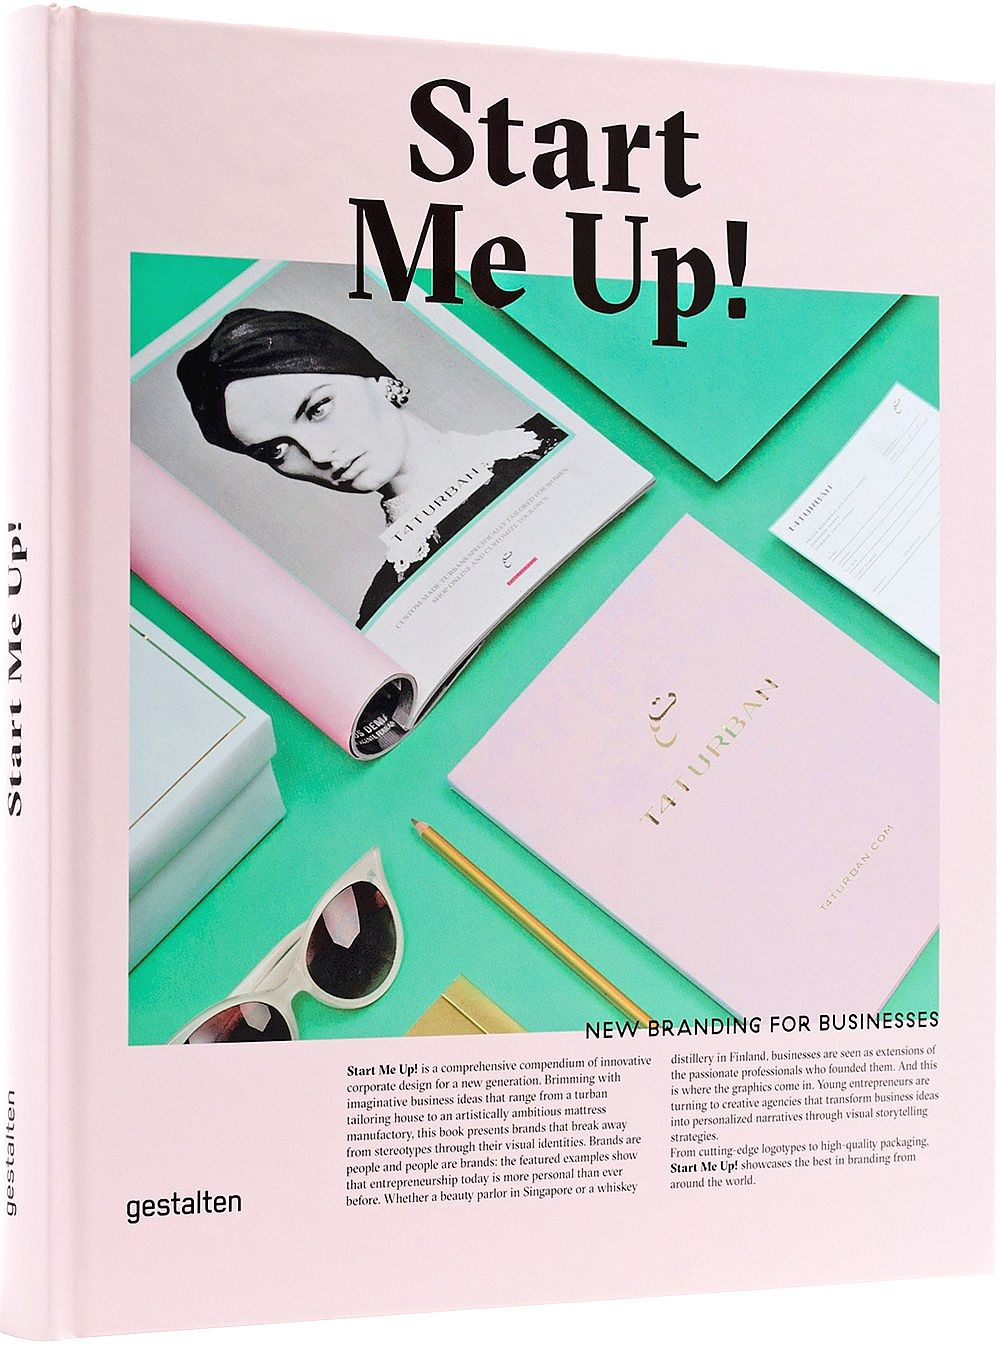 2015 start me up! gestalten, page 24-25 with l'Atelier Blanc design identity